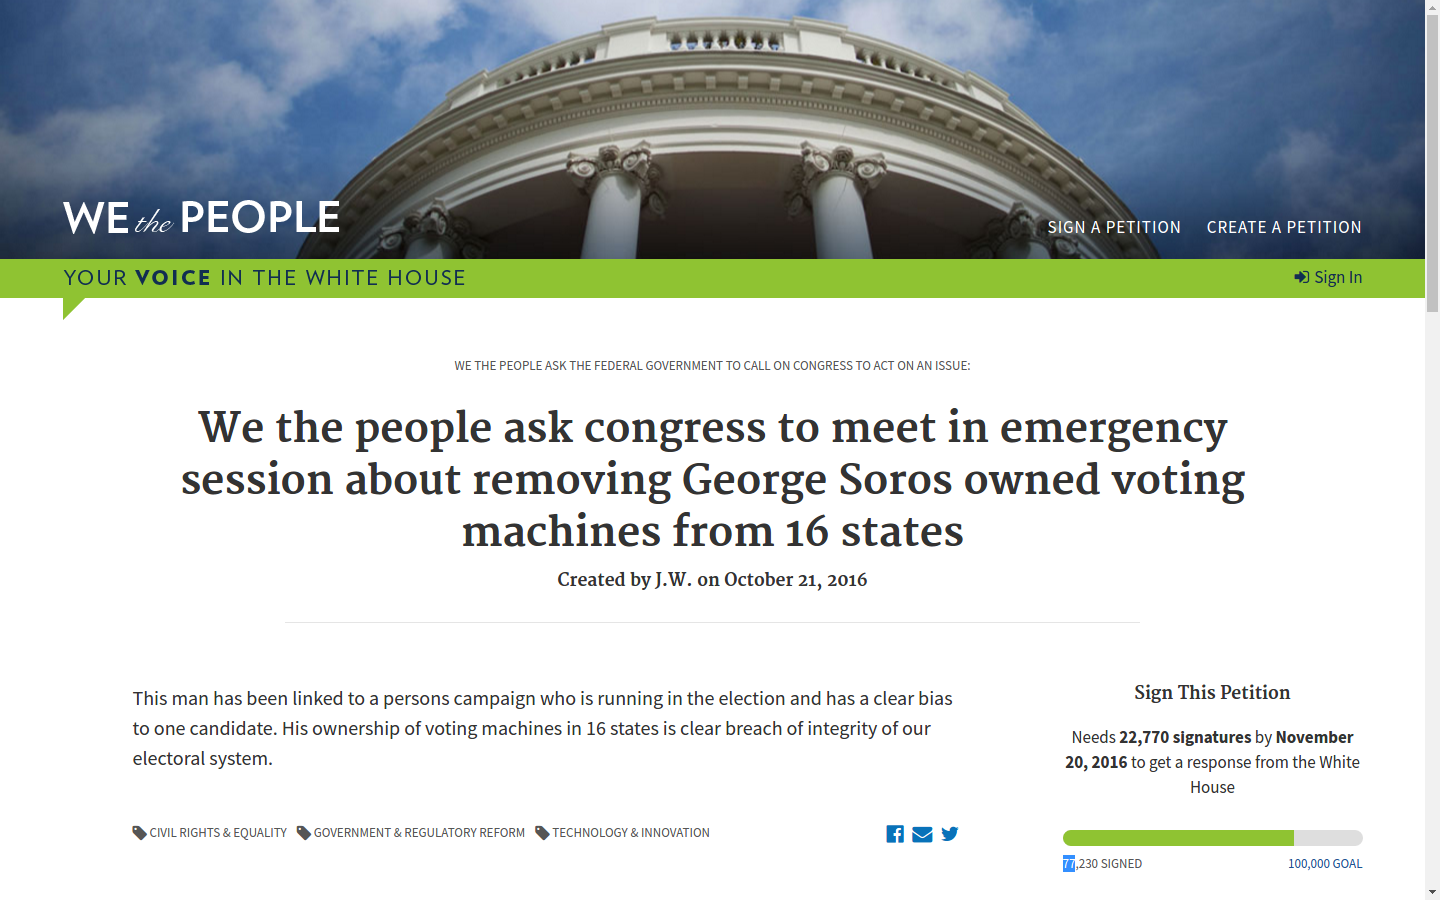 We the people ask congress to meet in emergency session about removing George Soros owned voting machines from 16 states